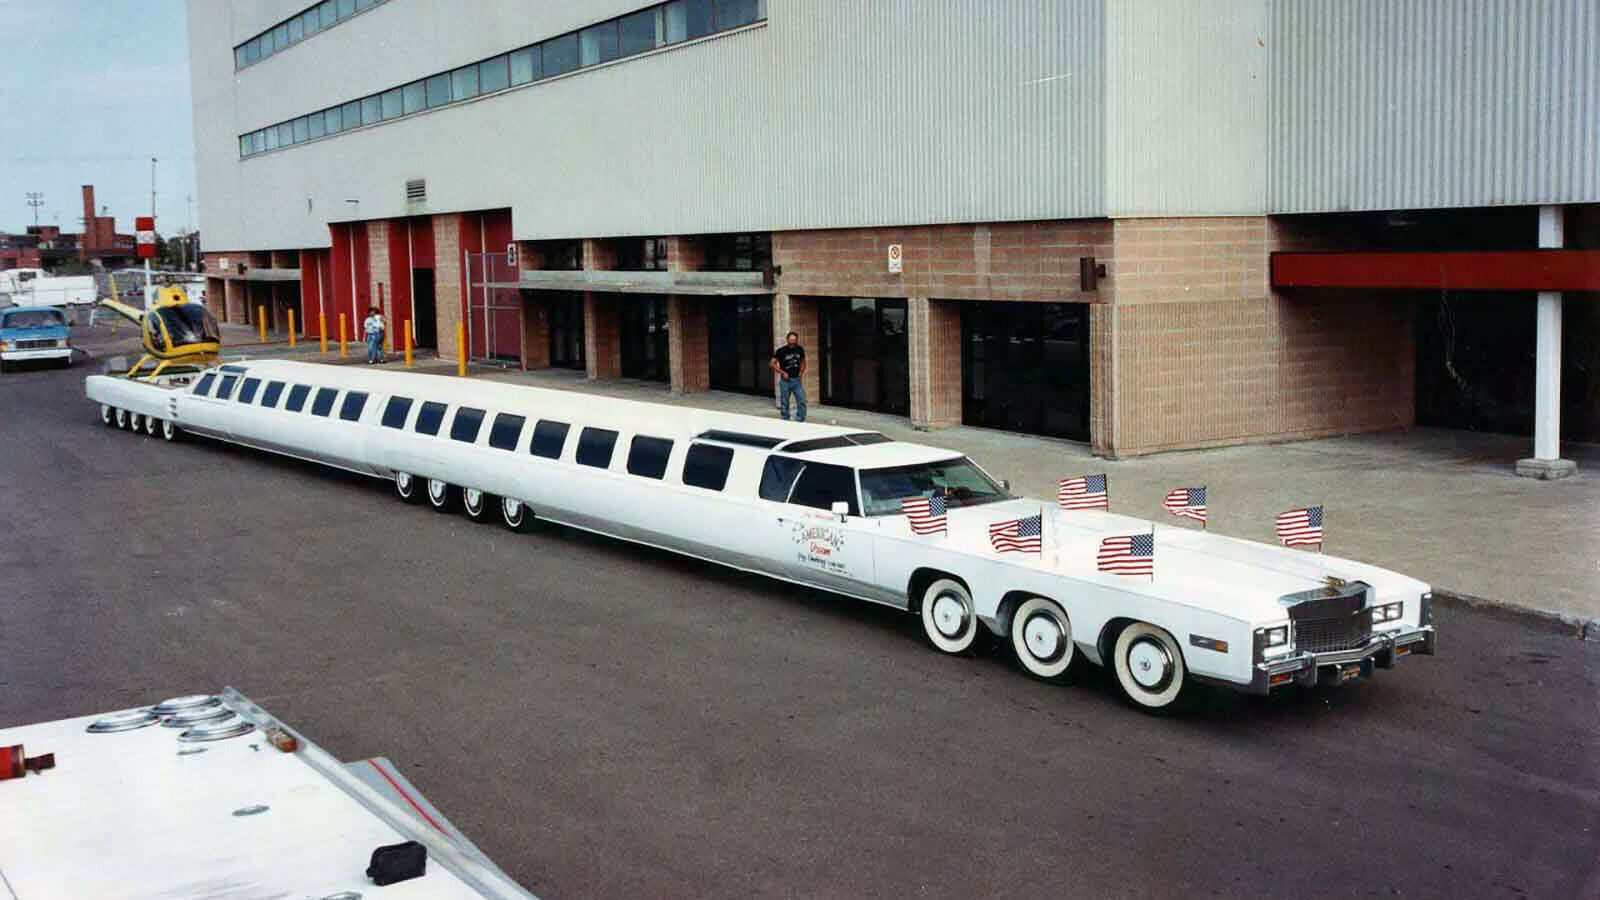 https://i.ibb.co/DLcdgKF/limo01.jpg